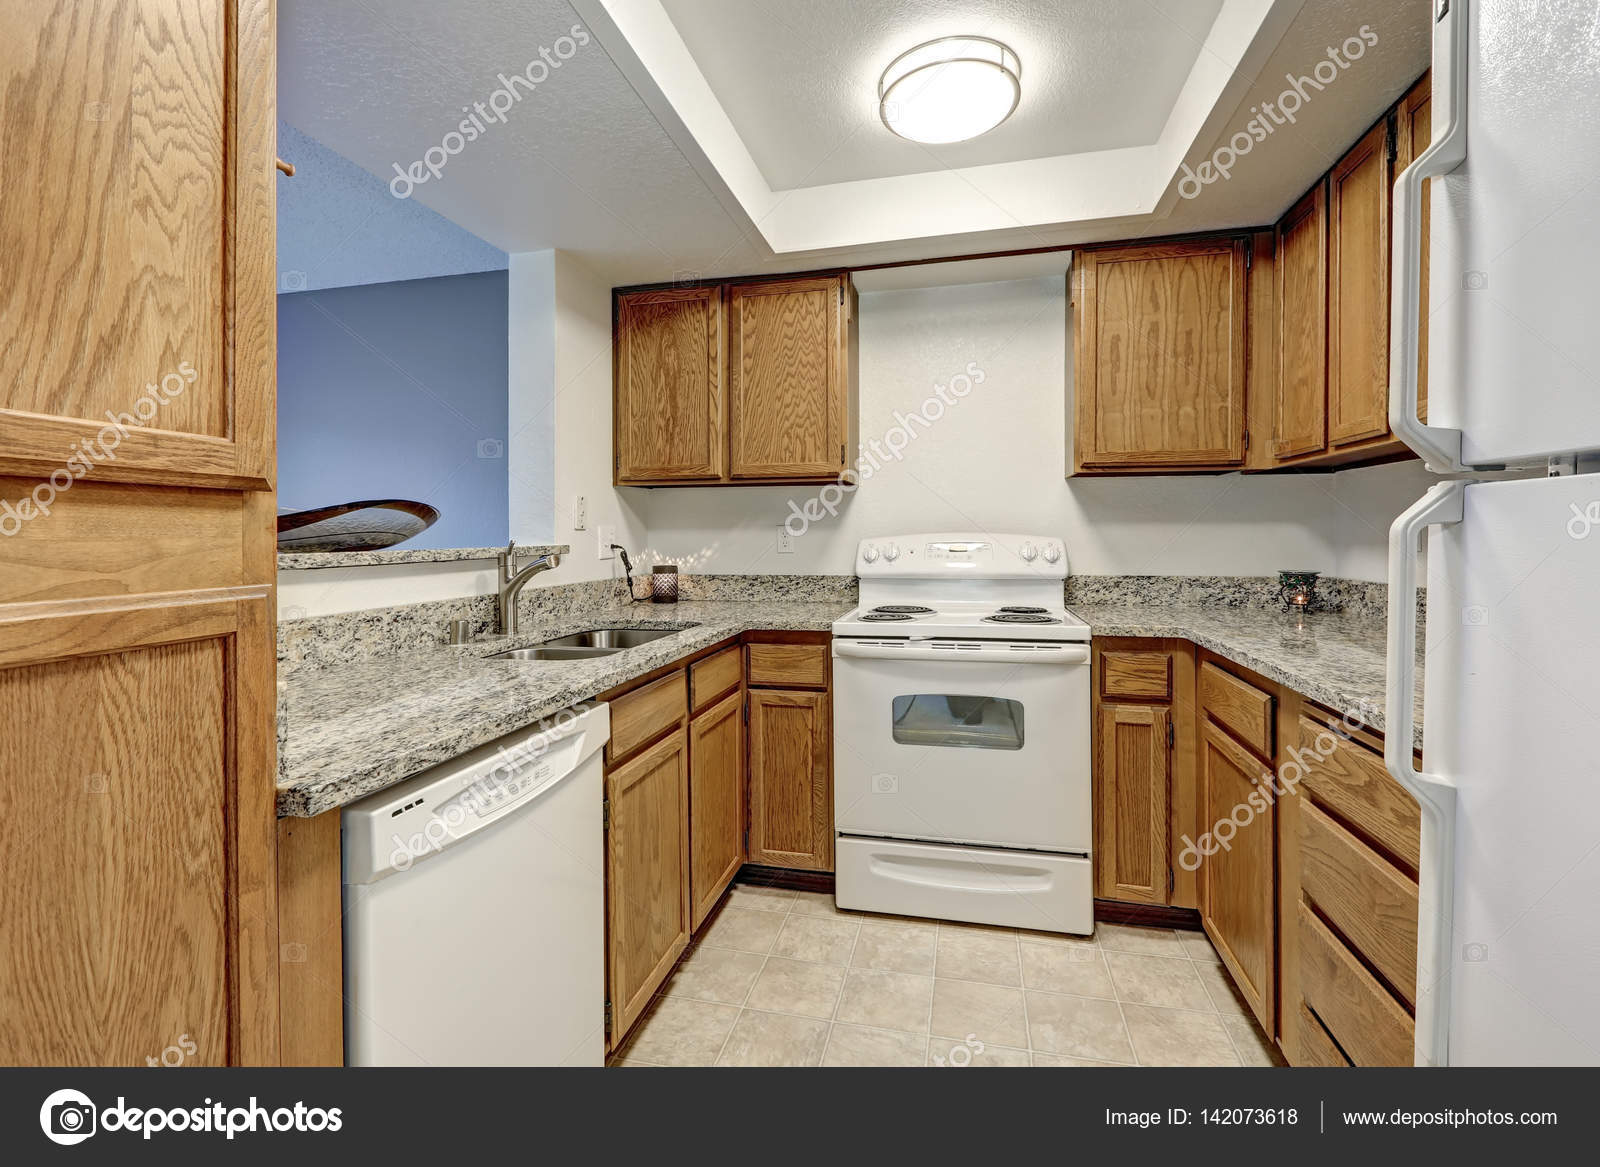 Small U Shaped Kitchen Filled With Wood Cabinets Stock Photo C Iriana88w 142073618